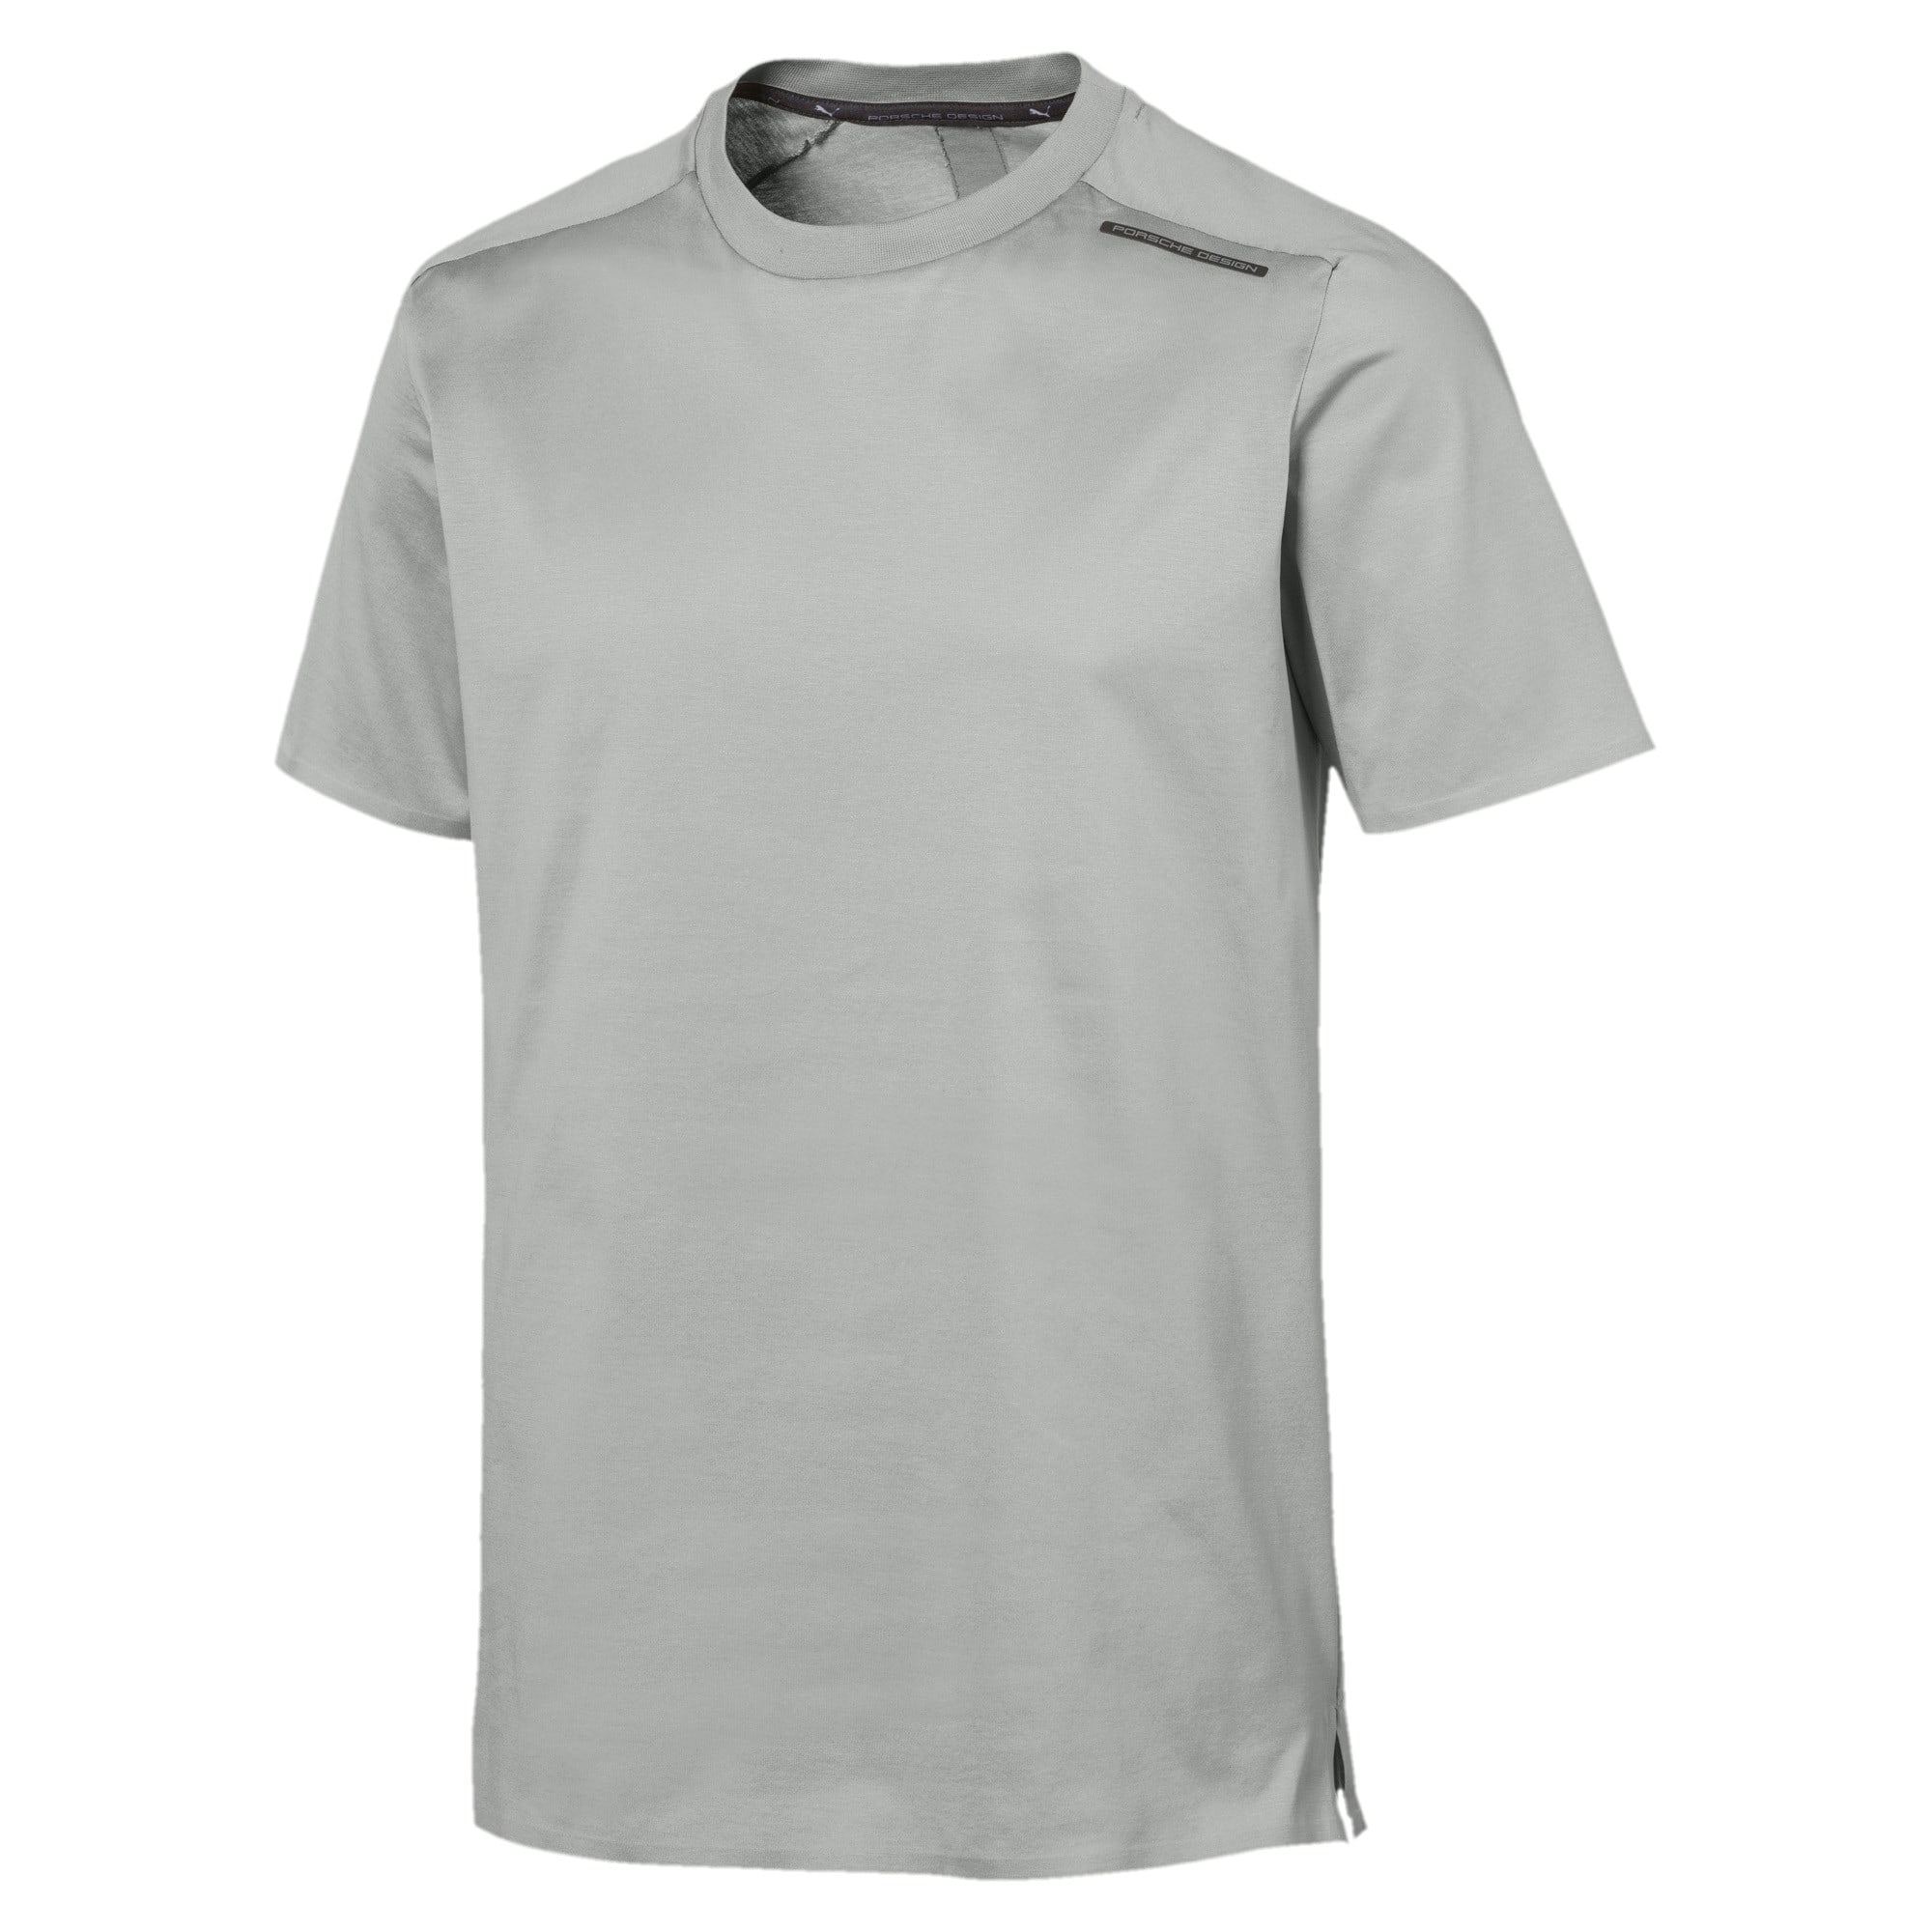 Thumbnail 1 of PORSCHE DESIGN  ライフ Tシャツ, Limestone, medium-JPN